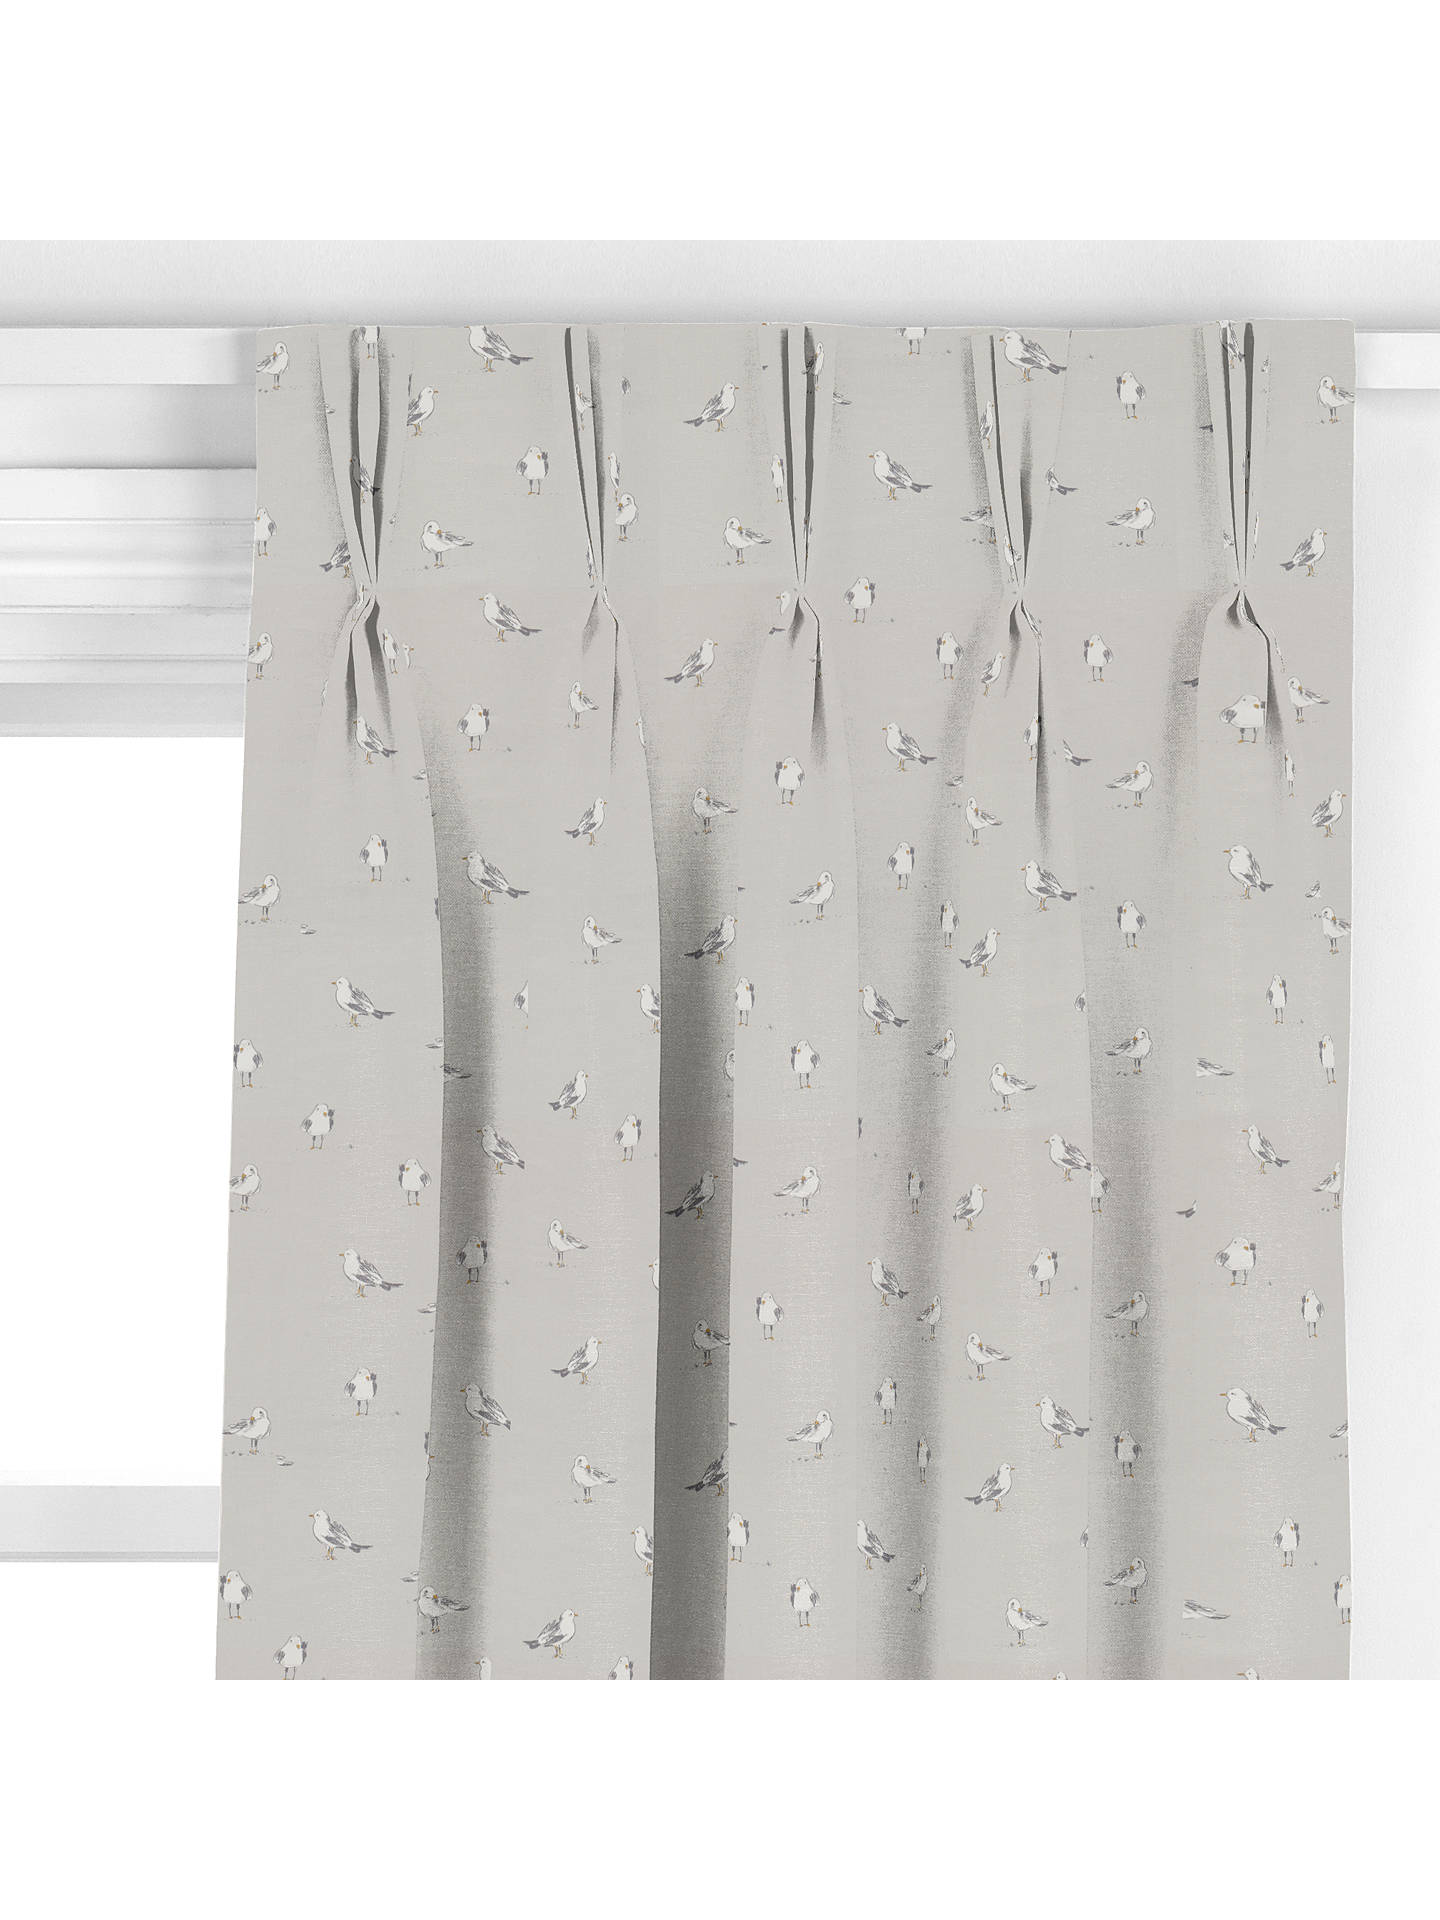 BuyJohn Lewis & Partners Seagulls Curtain, Smoke Online at johnlewis.com